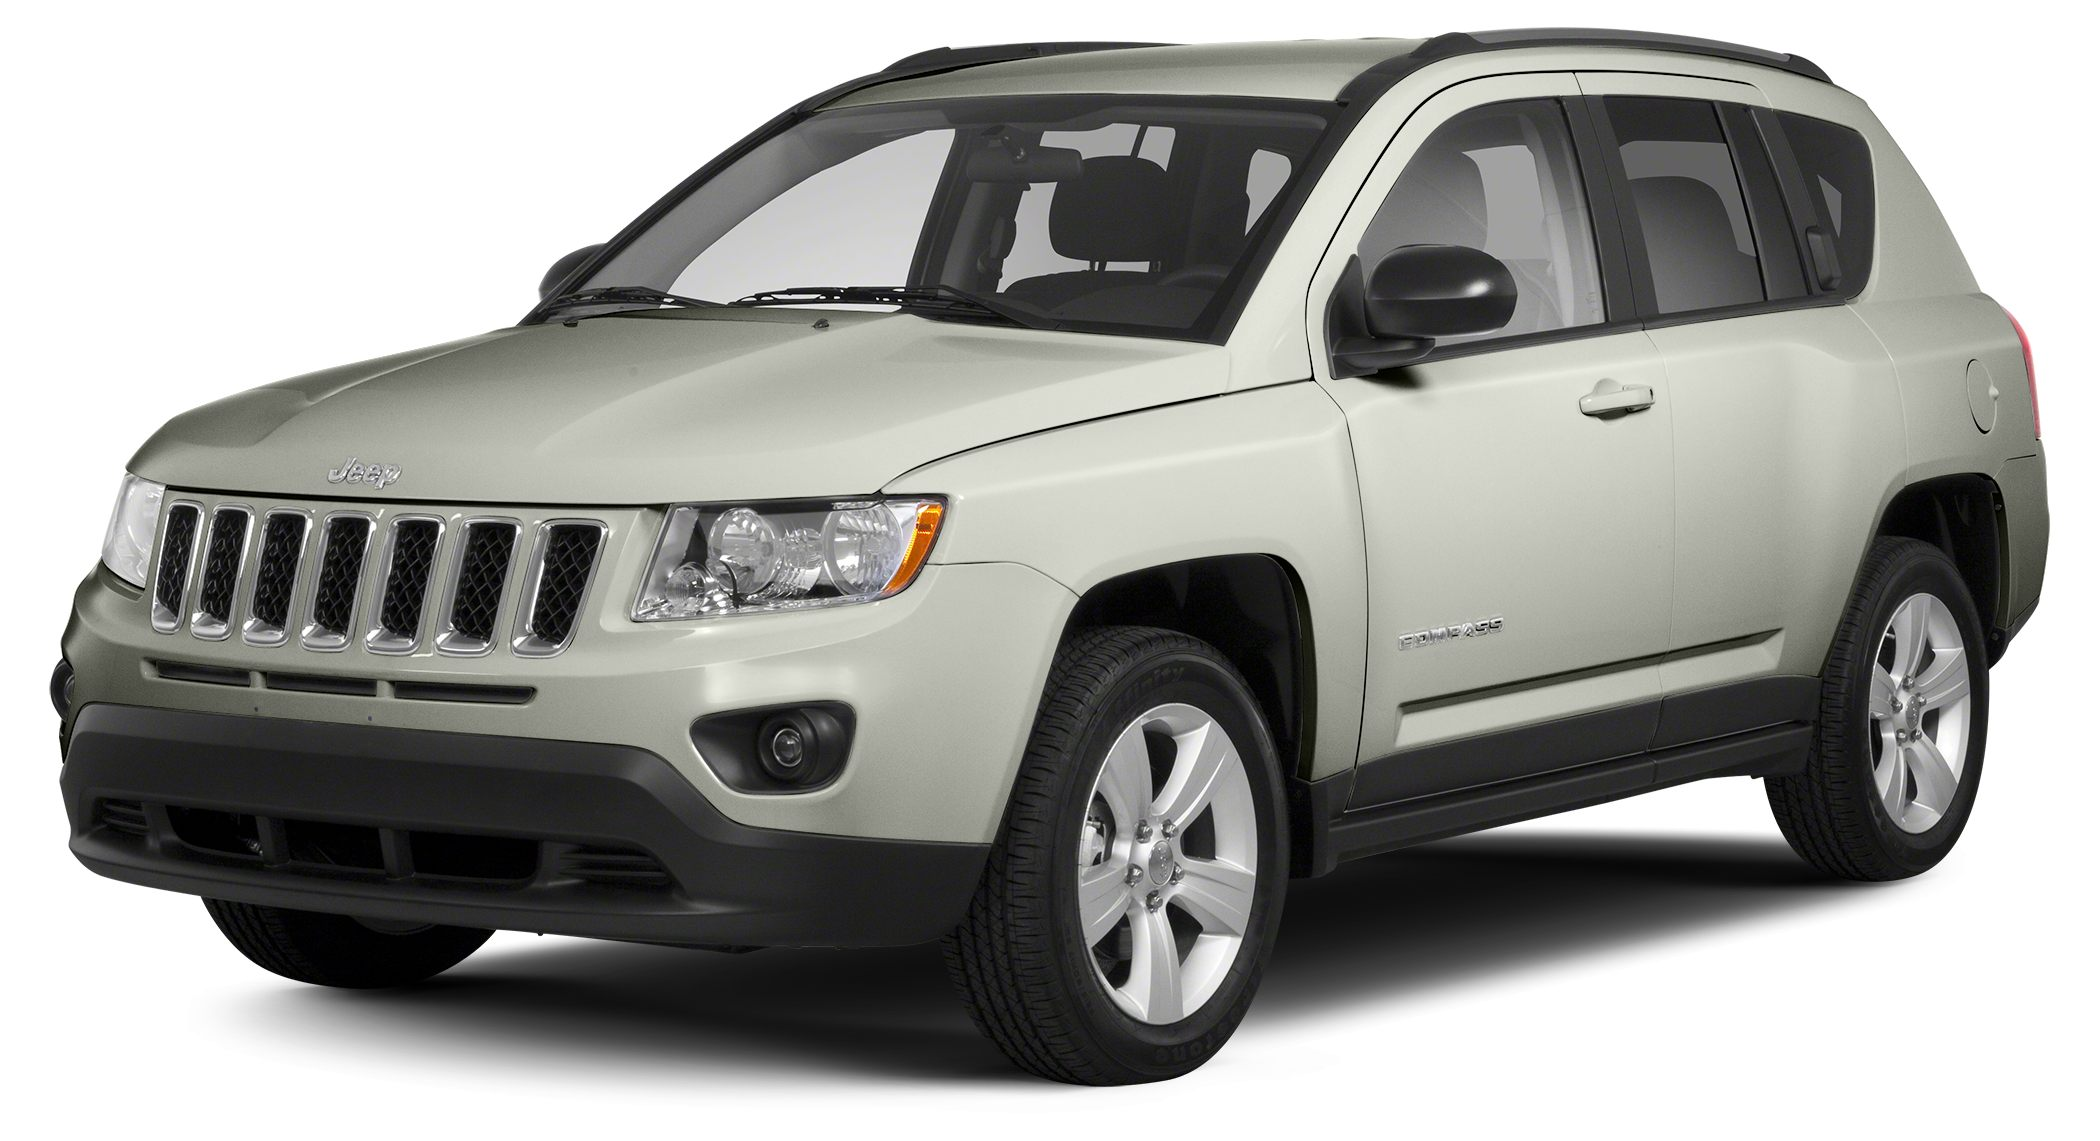 2013 Jeep Compass Limited Extra Clean Jeep Certified GREAT MILES 18500 FUEL EFFICIENT 27 MPG H